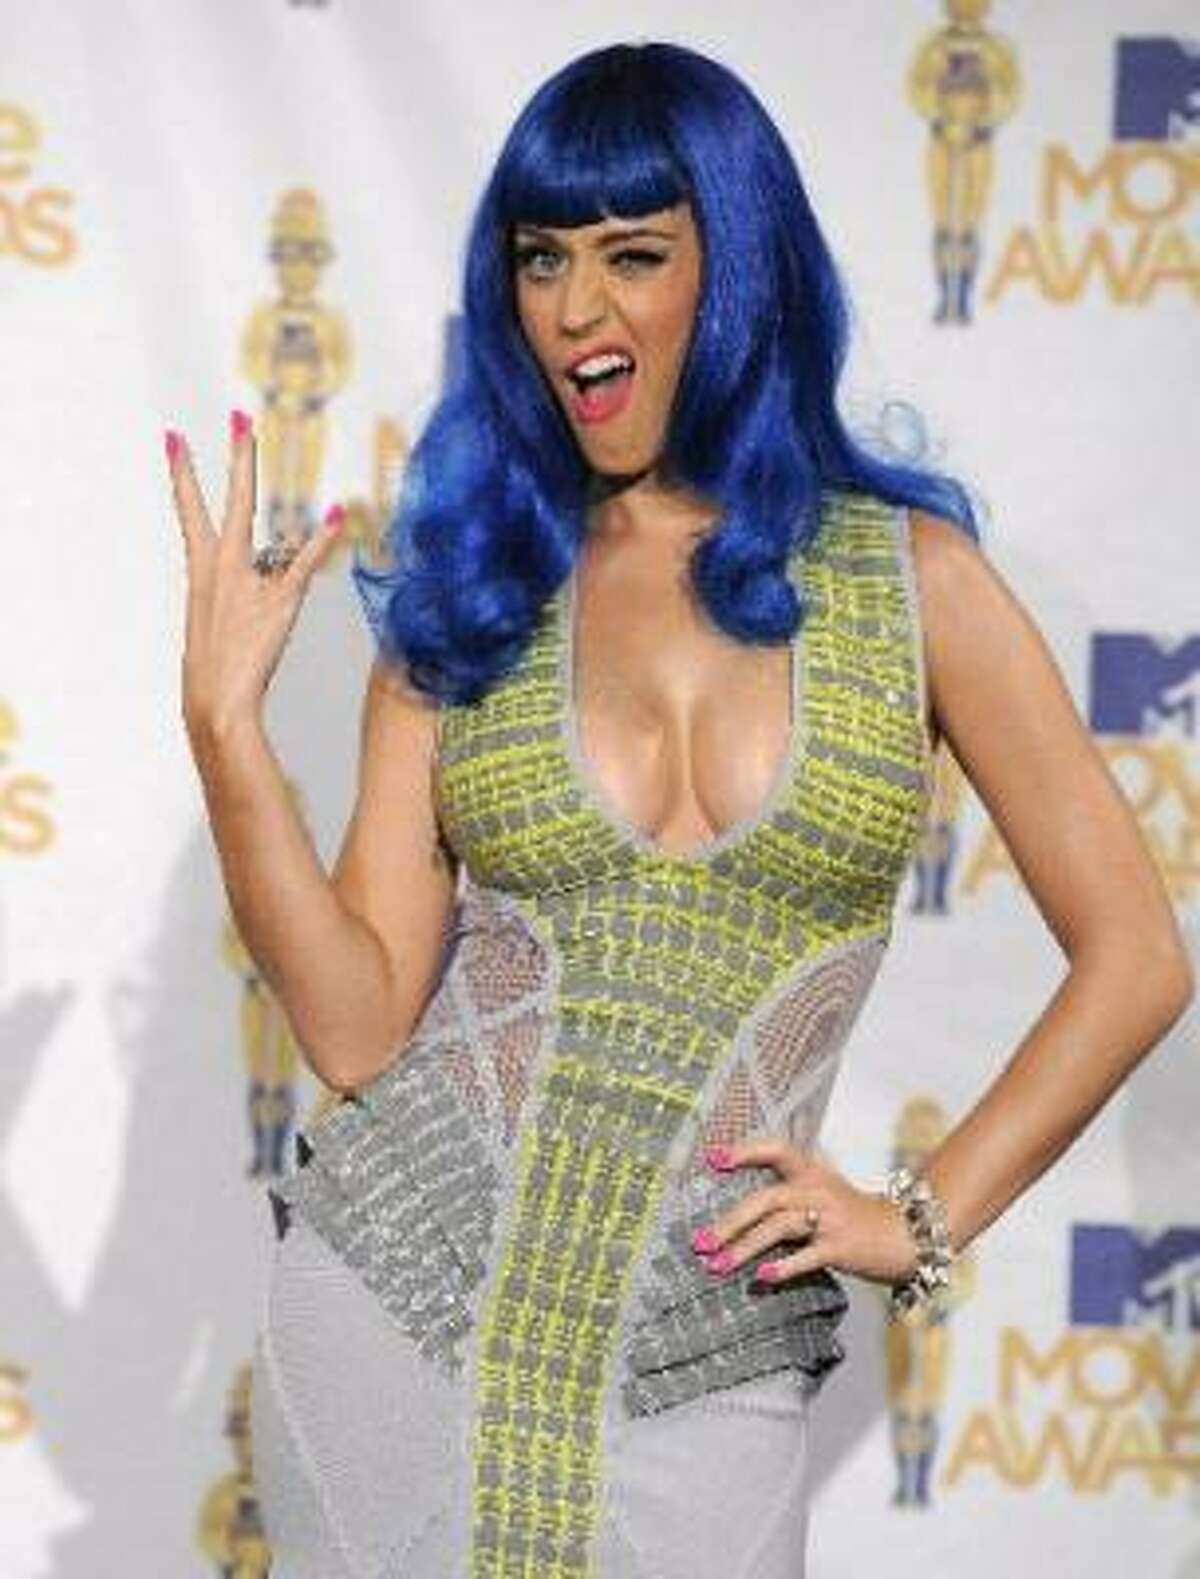 Never mind the blue wig, Katy Perry's dress at the VMA's took our breath away. And that is not a compliment.